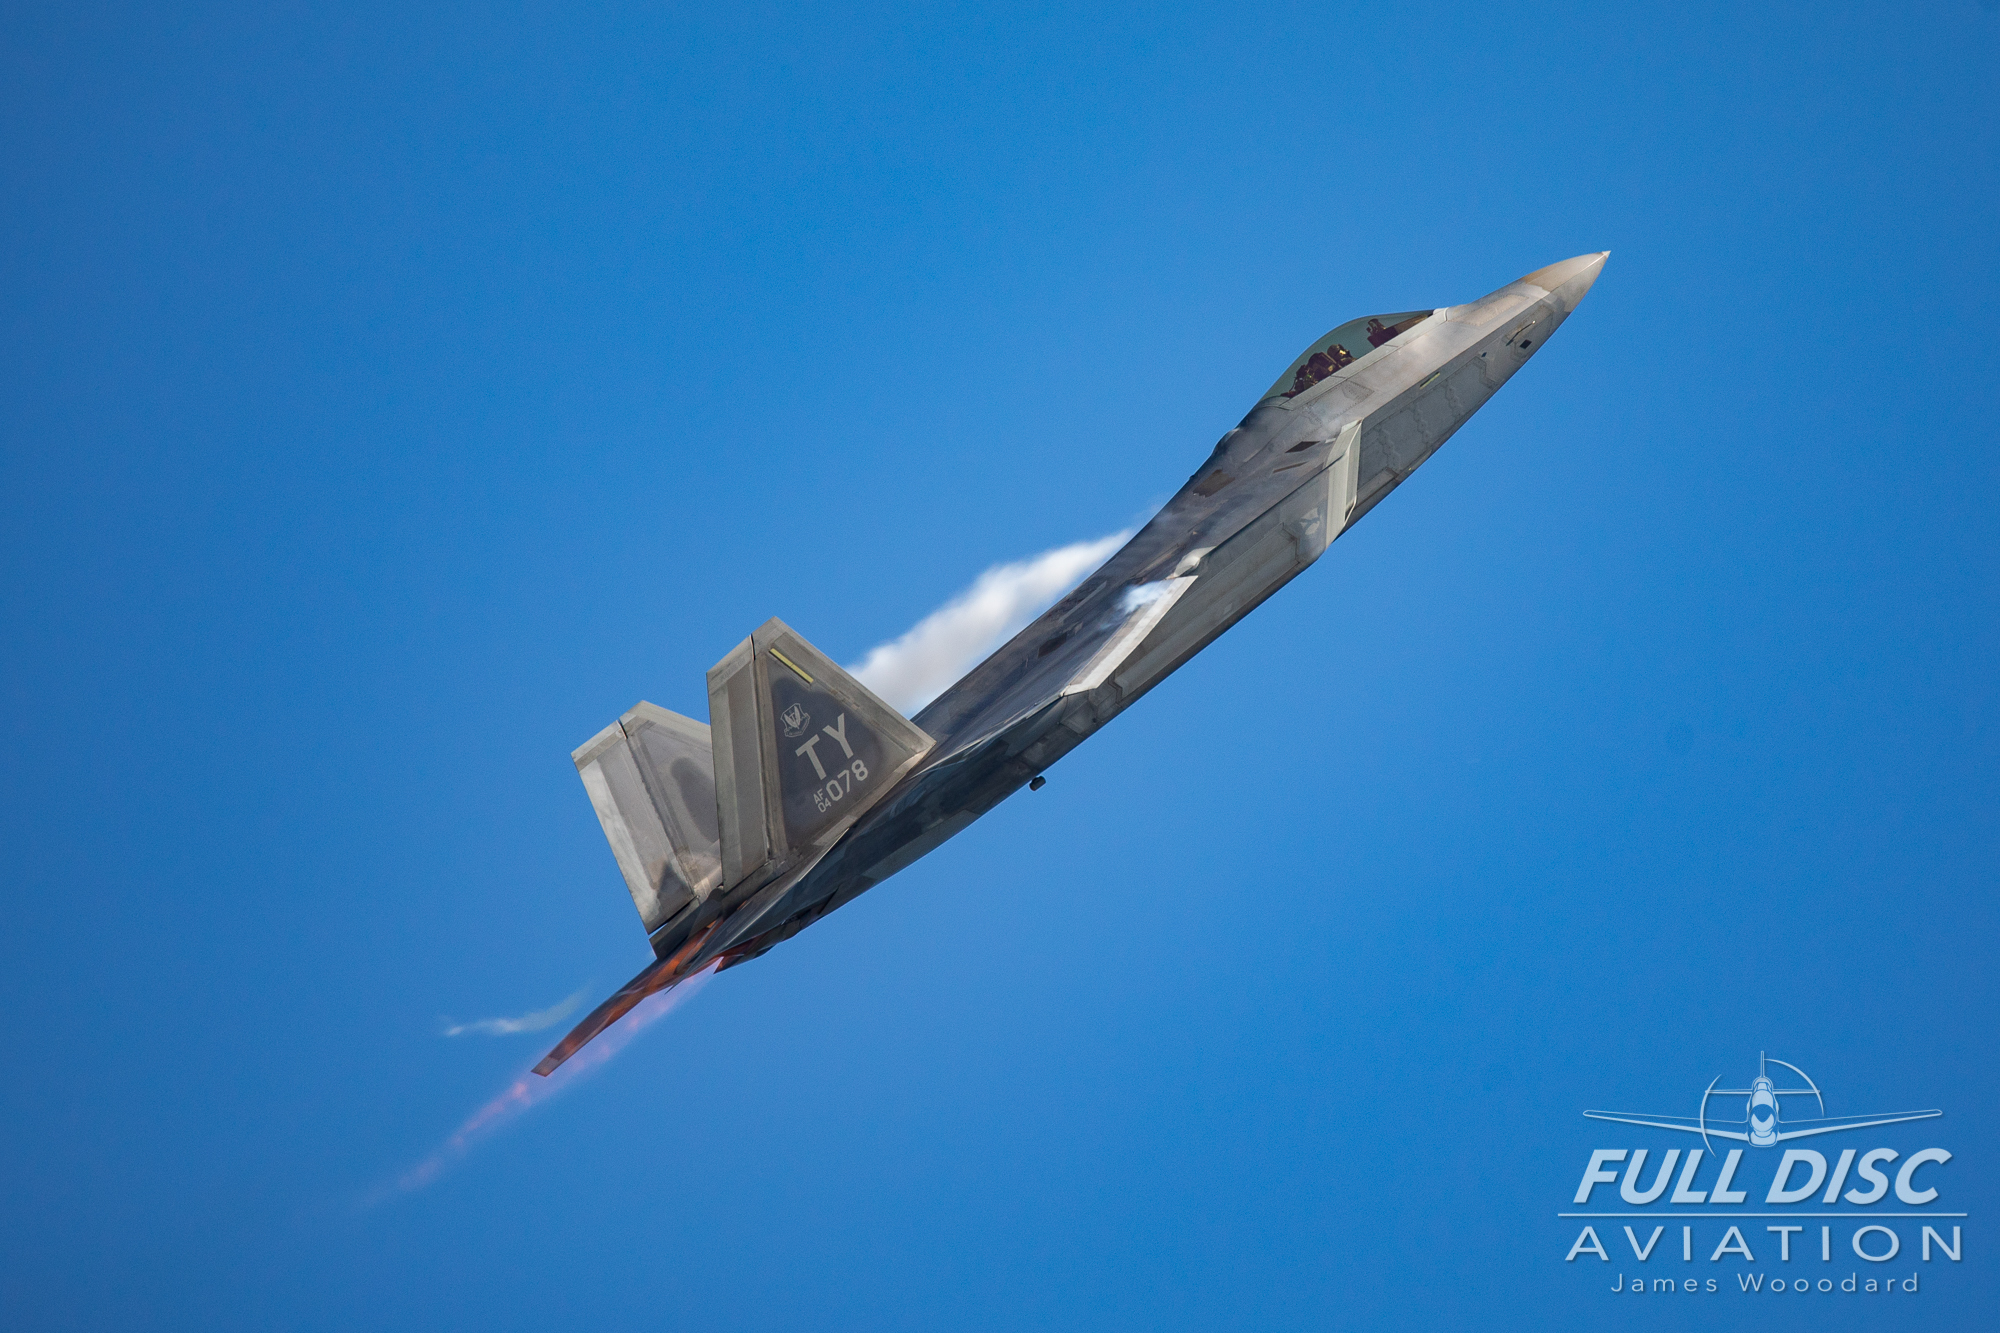 F22_FullDiscAviation_JamesWoodard-April 27, 2019-02-2.jpg